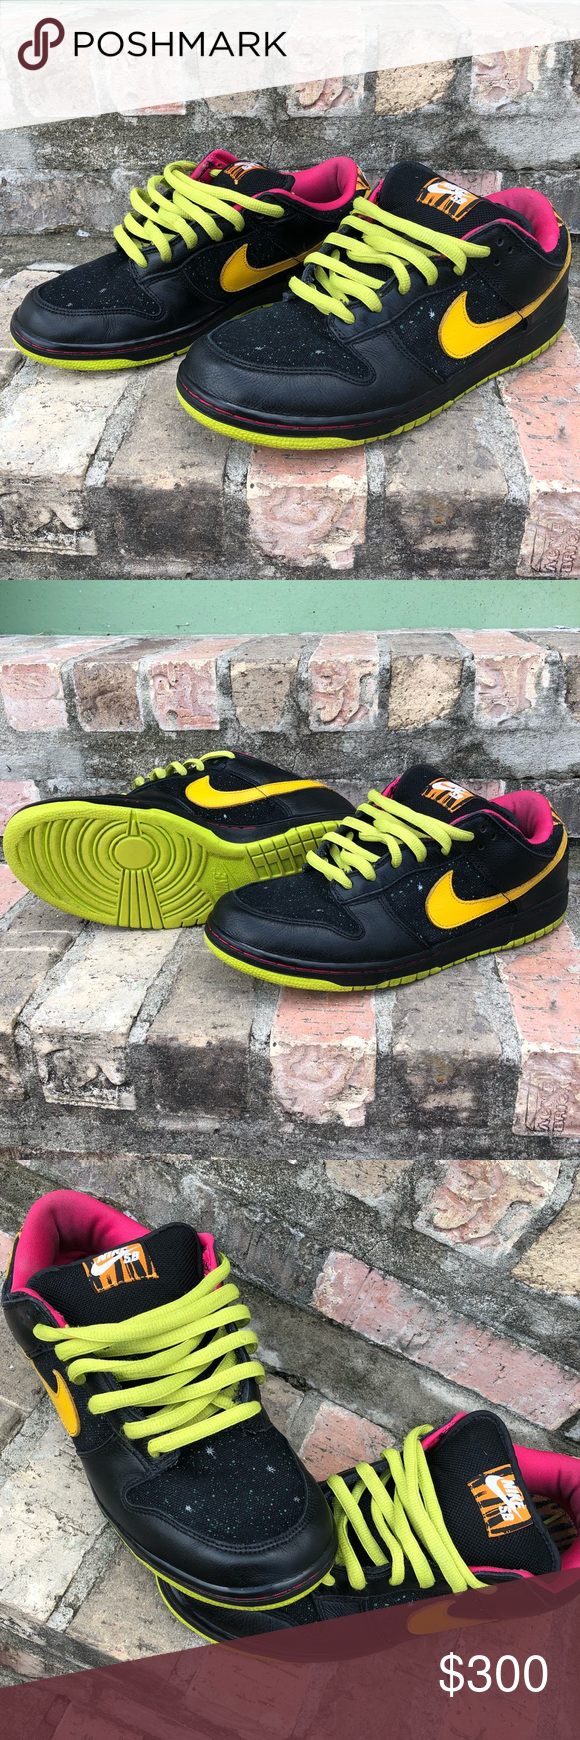 e7a96981 Nike SB dunk low Space Tigers 🐯 Excellent condition Nike SB Space Tigers.  Worth $750 brand new on StockX. These are excellent quality. Make me an  offer!